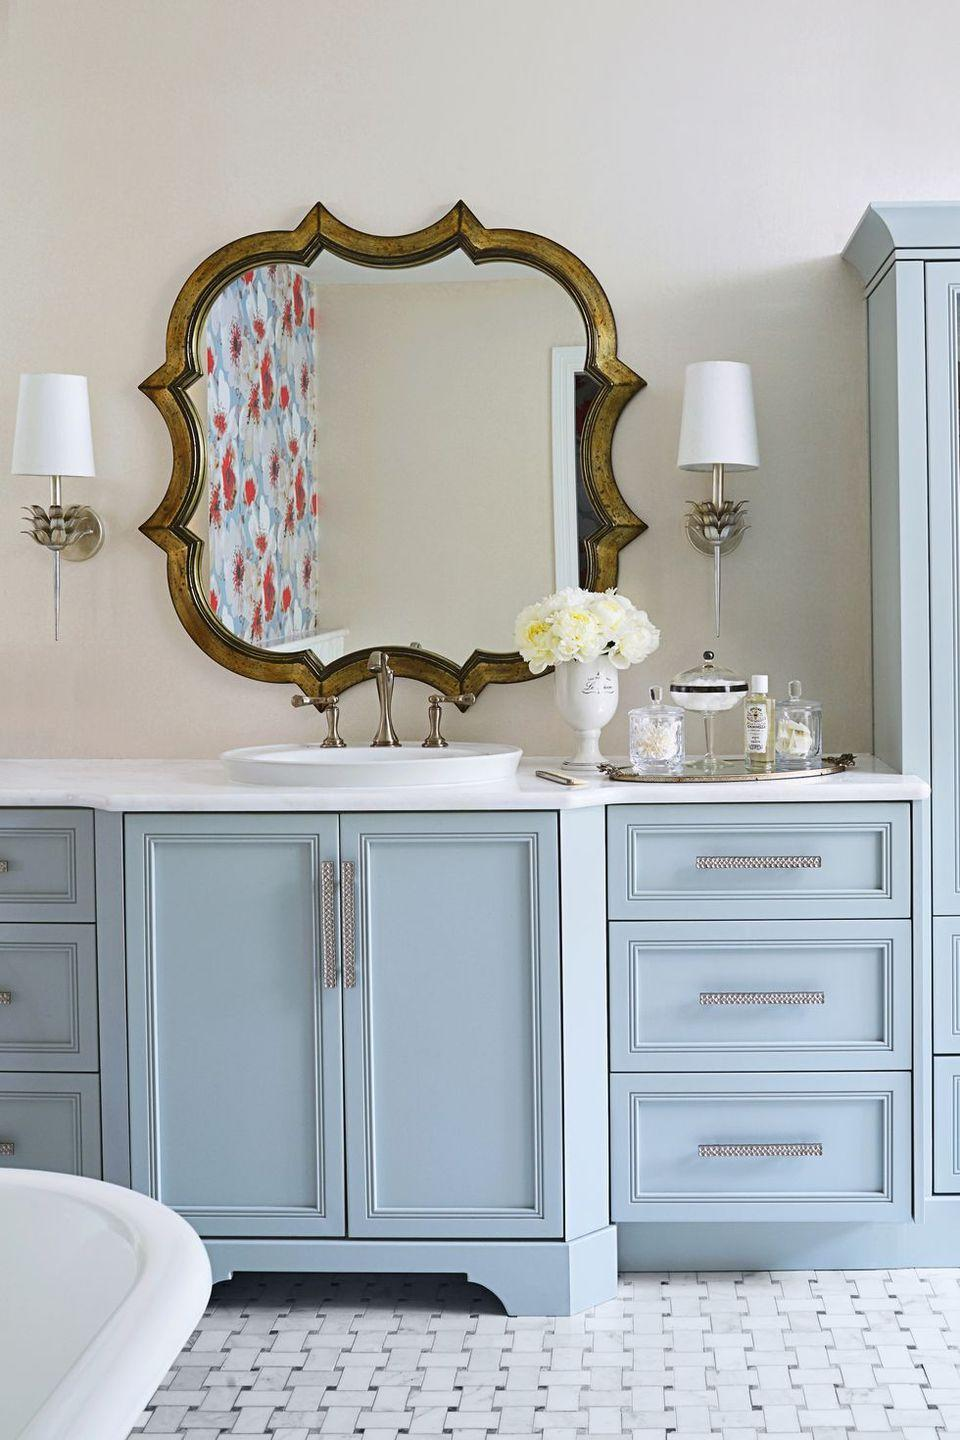 <p>Blue cabinetry and tiles in an interlocking pattern add flair to a traditional cream backdrop. <br></p>